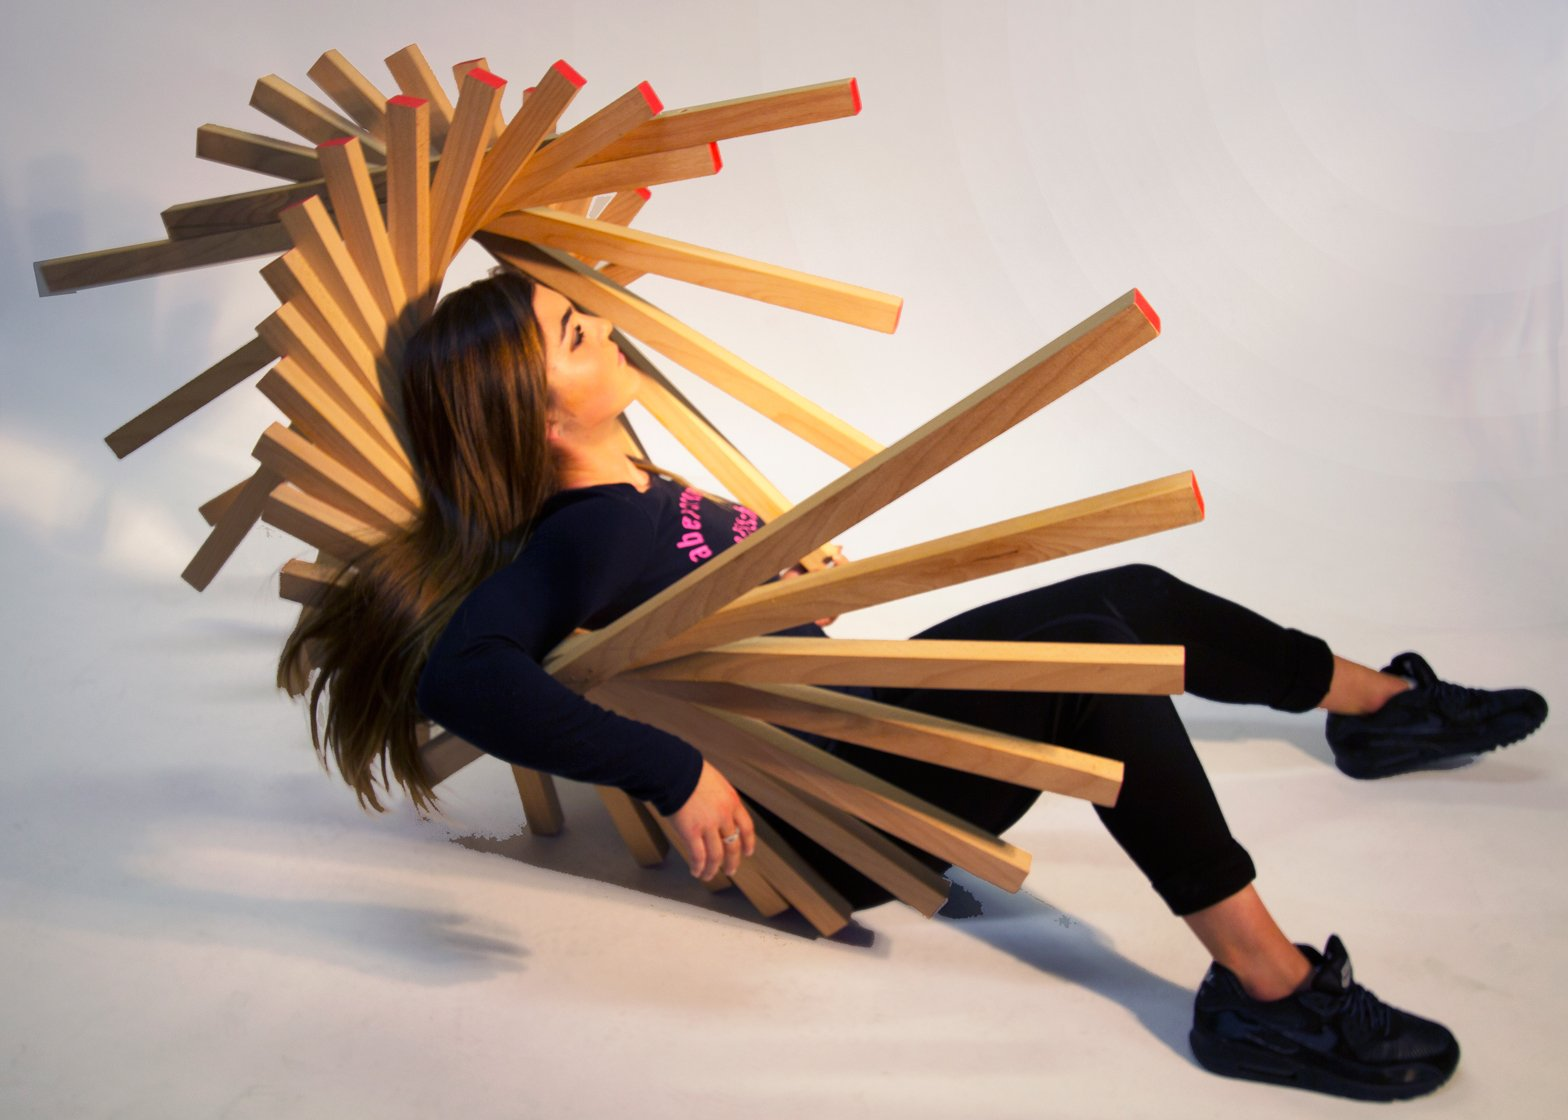 Disposture chair forces sitters into an uncomfortable slump